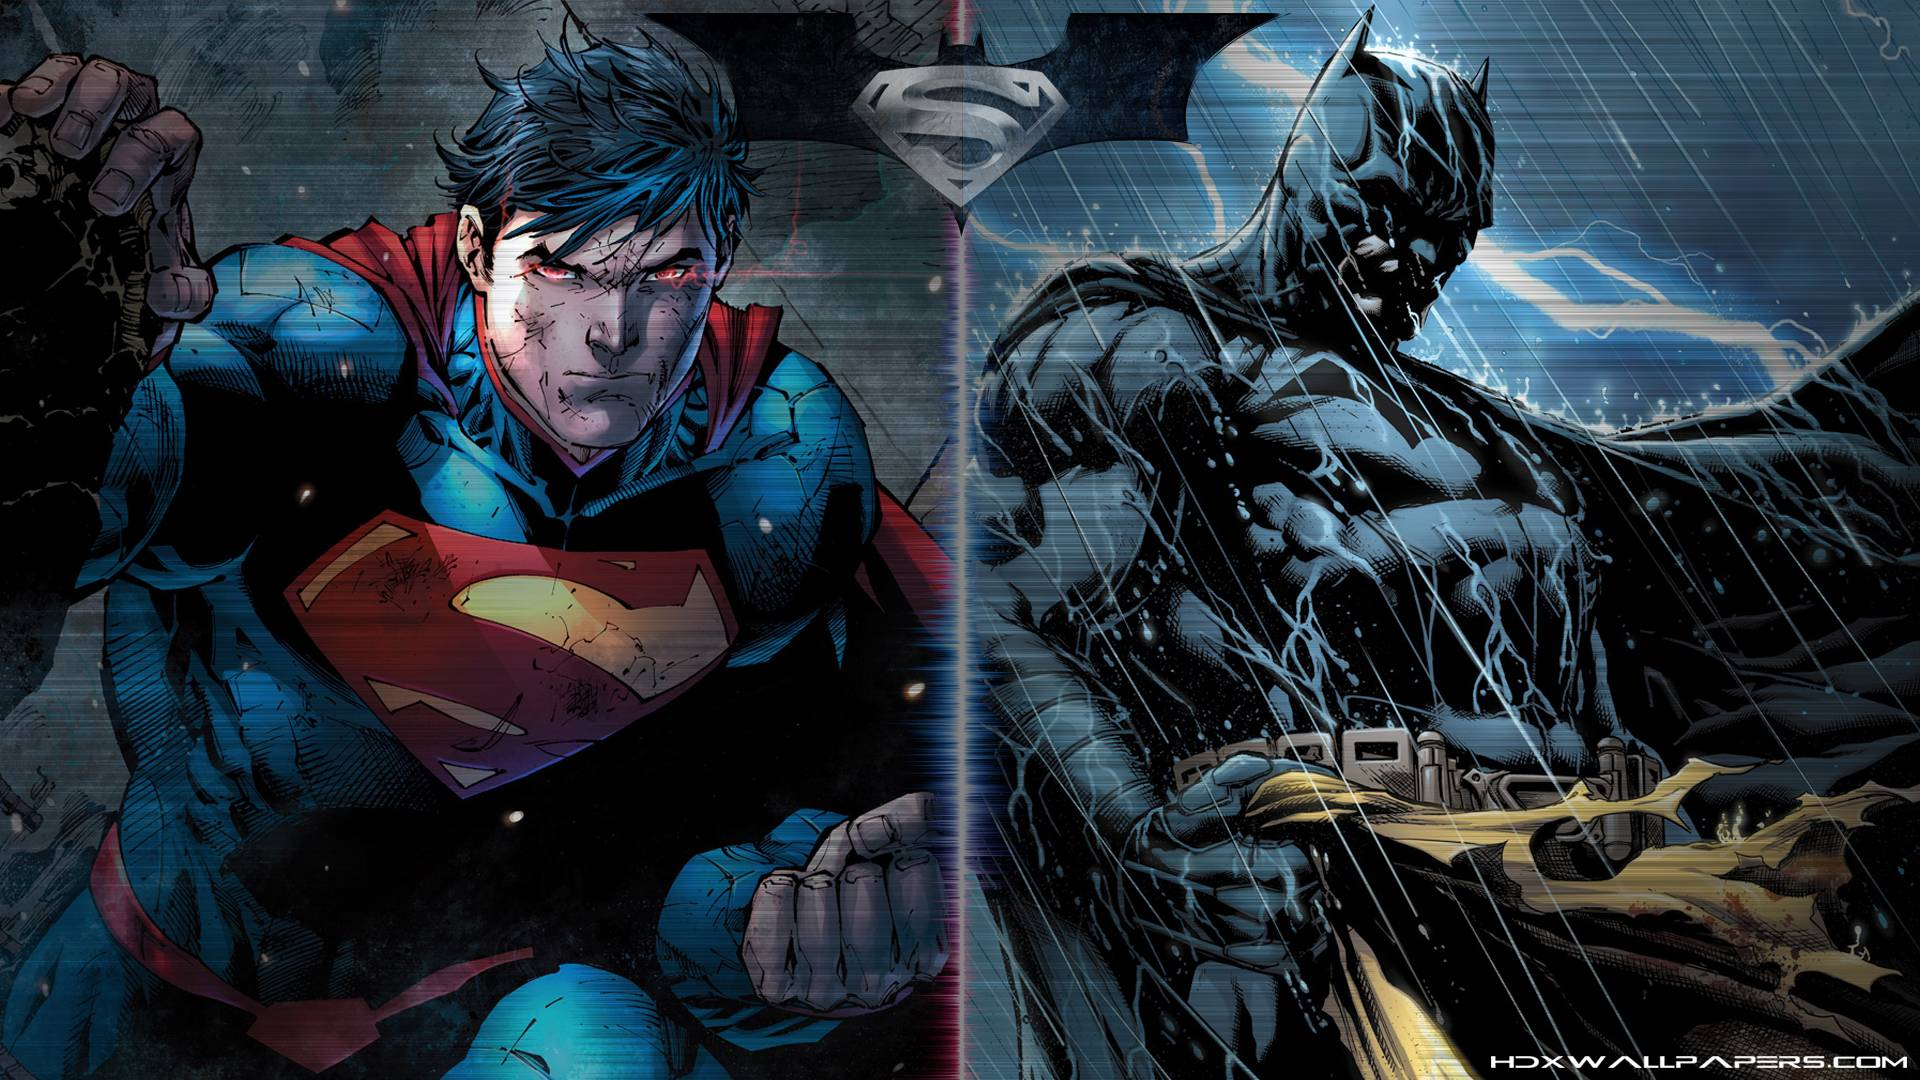 batman and superman Batman (ben affleck) and superman (henry cavill) share the screen in this warner bros/dc entertainment co-production penned by david s goyer and chris terrio, and directed by zack snyder amy adams and diane lane return as lois lane and martha kent, respectively.